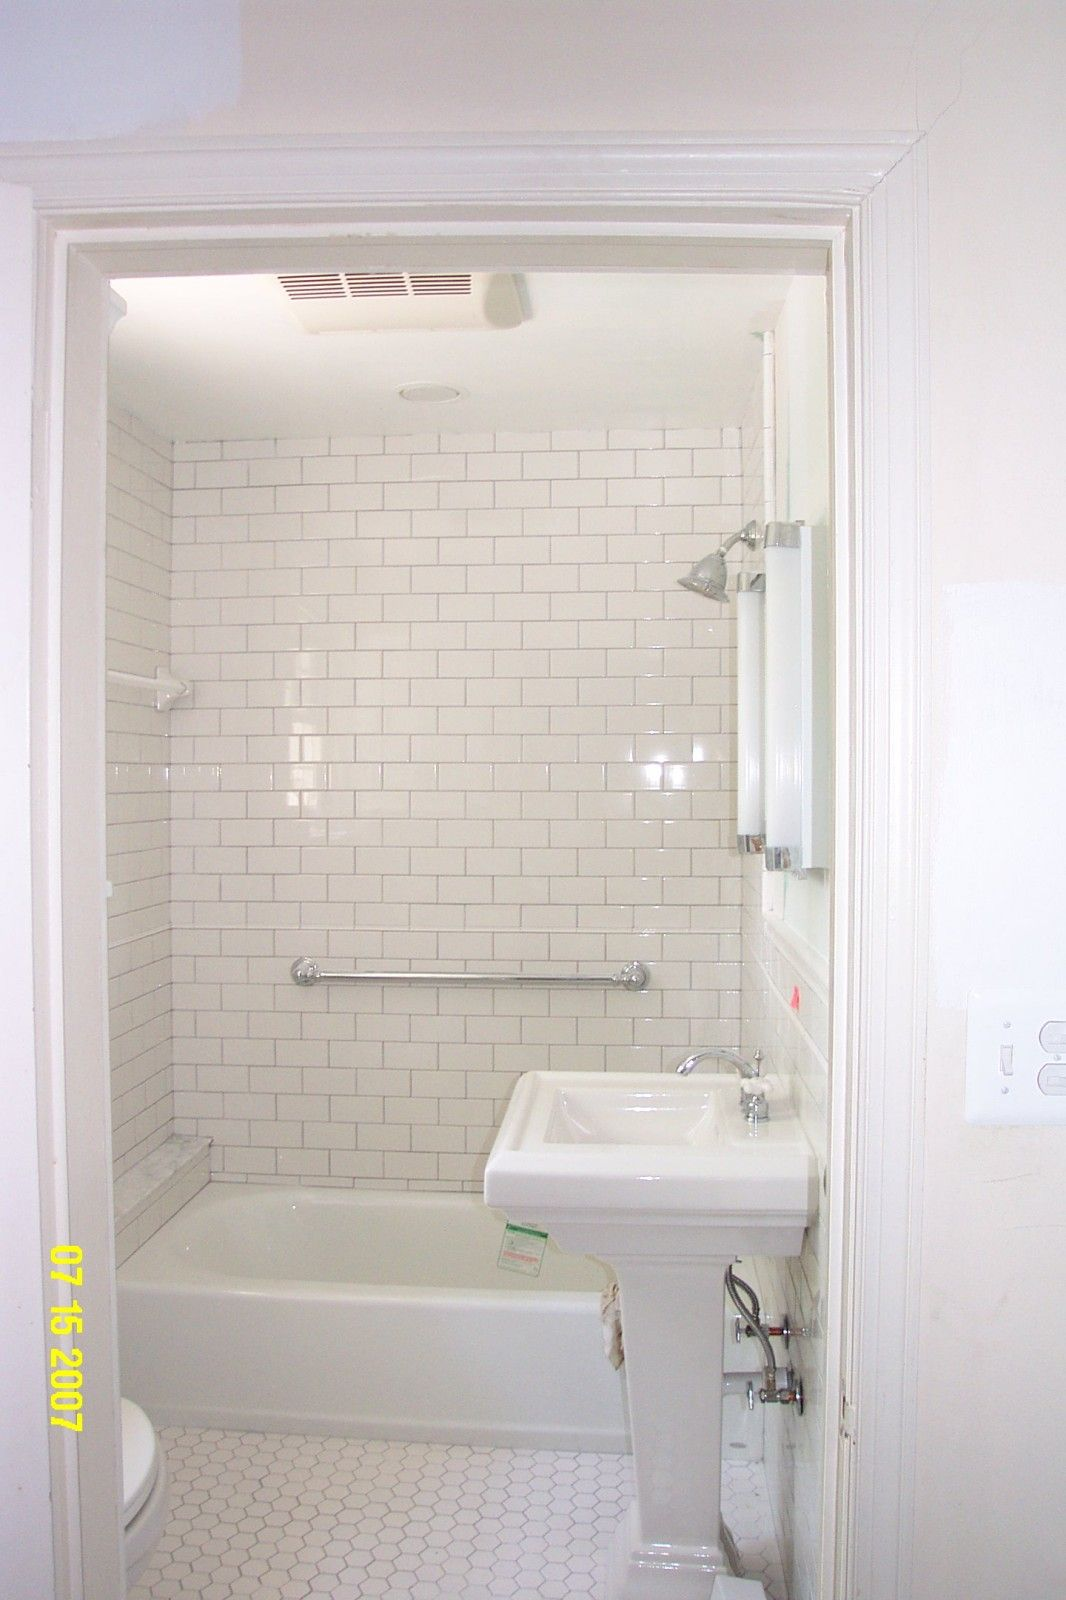 Image of subway tile bathroom ideas white 6041 interior for Bathroom ideas using subway tile